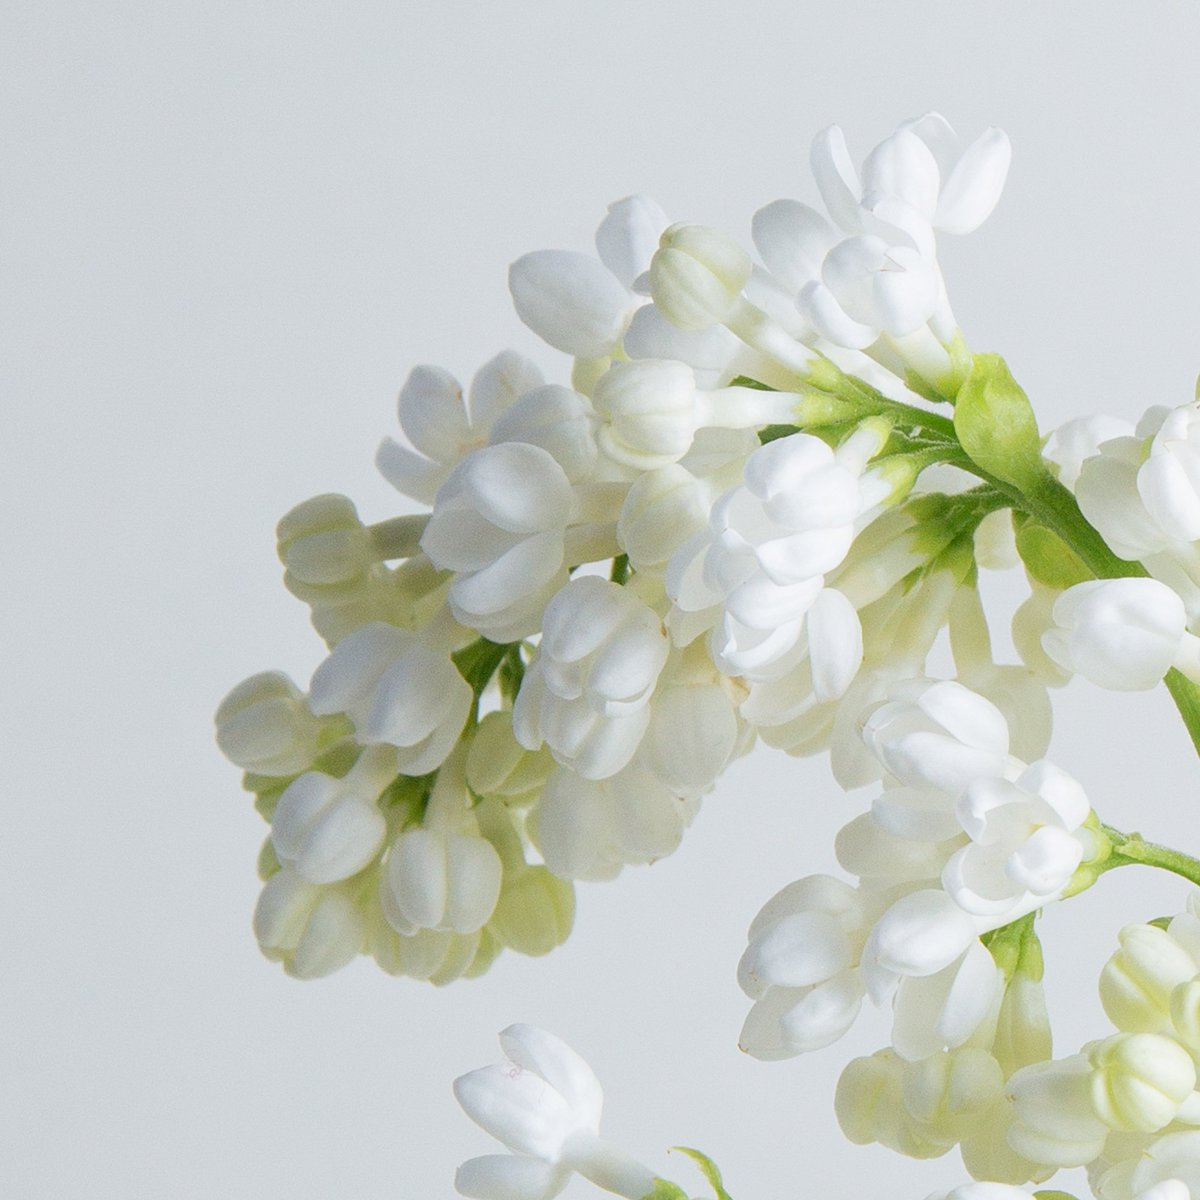 Floom On Twitter White Lilac Or Syringa Alba Comes From Greek